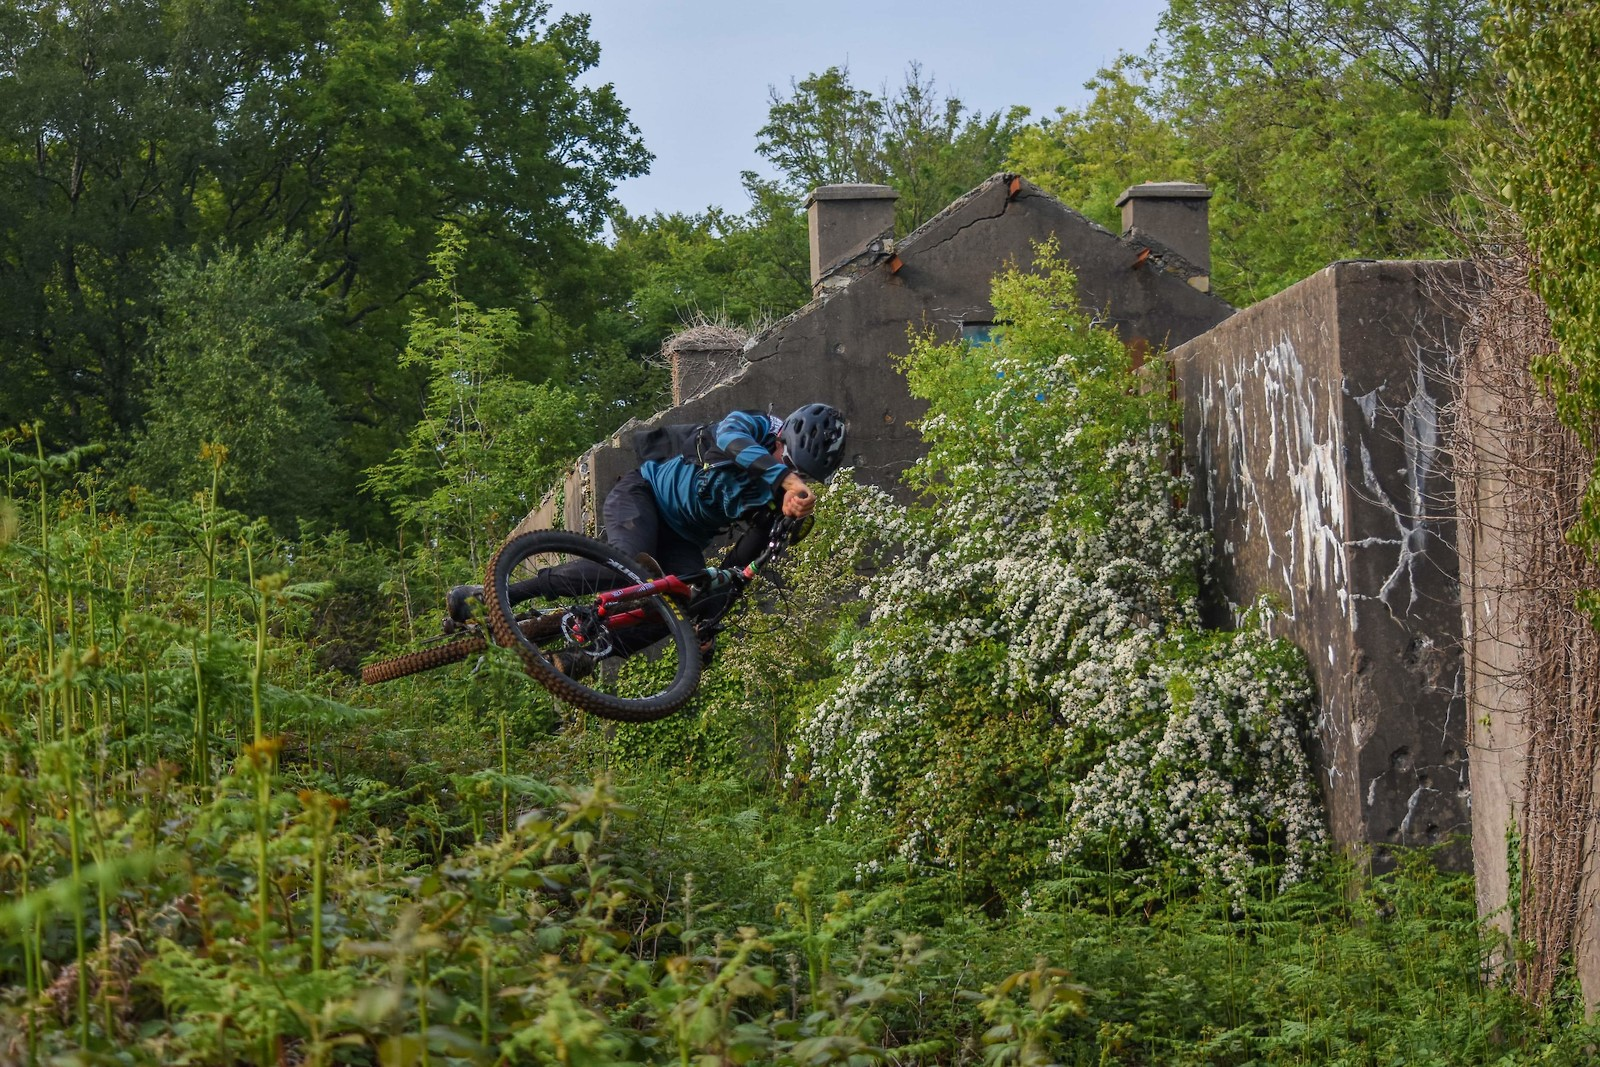 Little scrub behind the old house. Rider : Ambroise hebert-racing - Ambroise_Hebert-Racing - Mountain Biking Pictures - Vital MTB